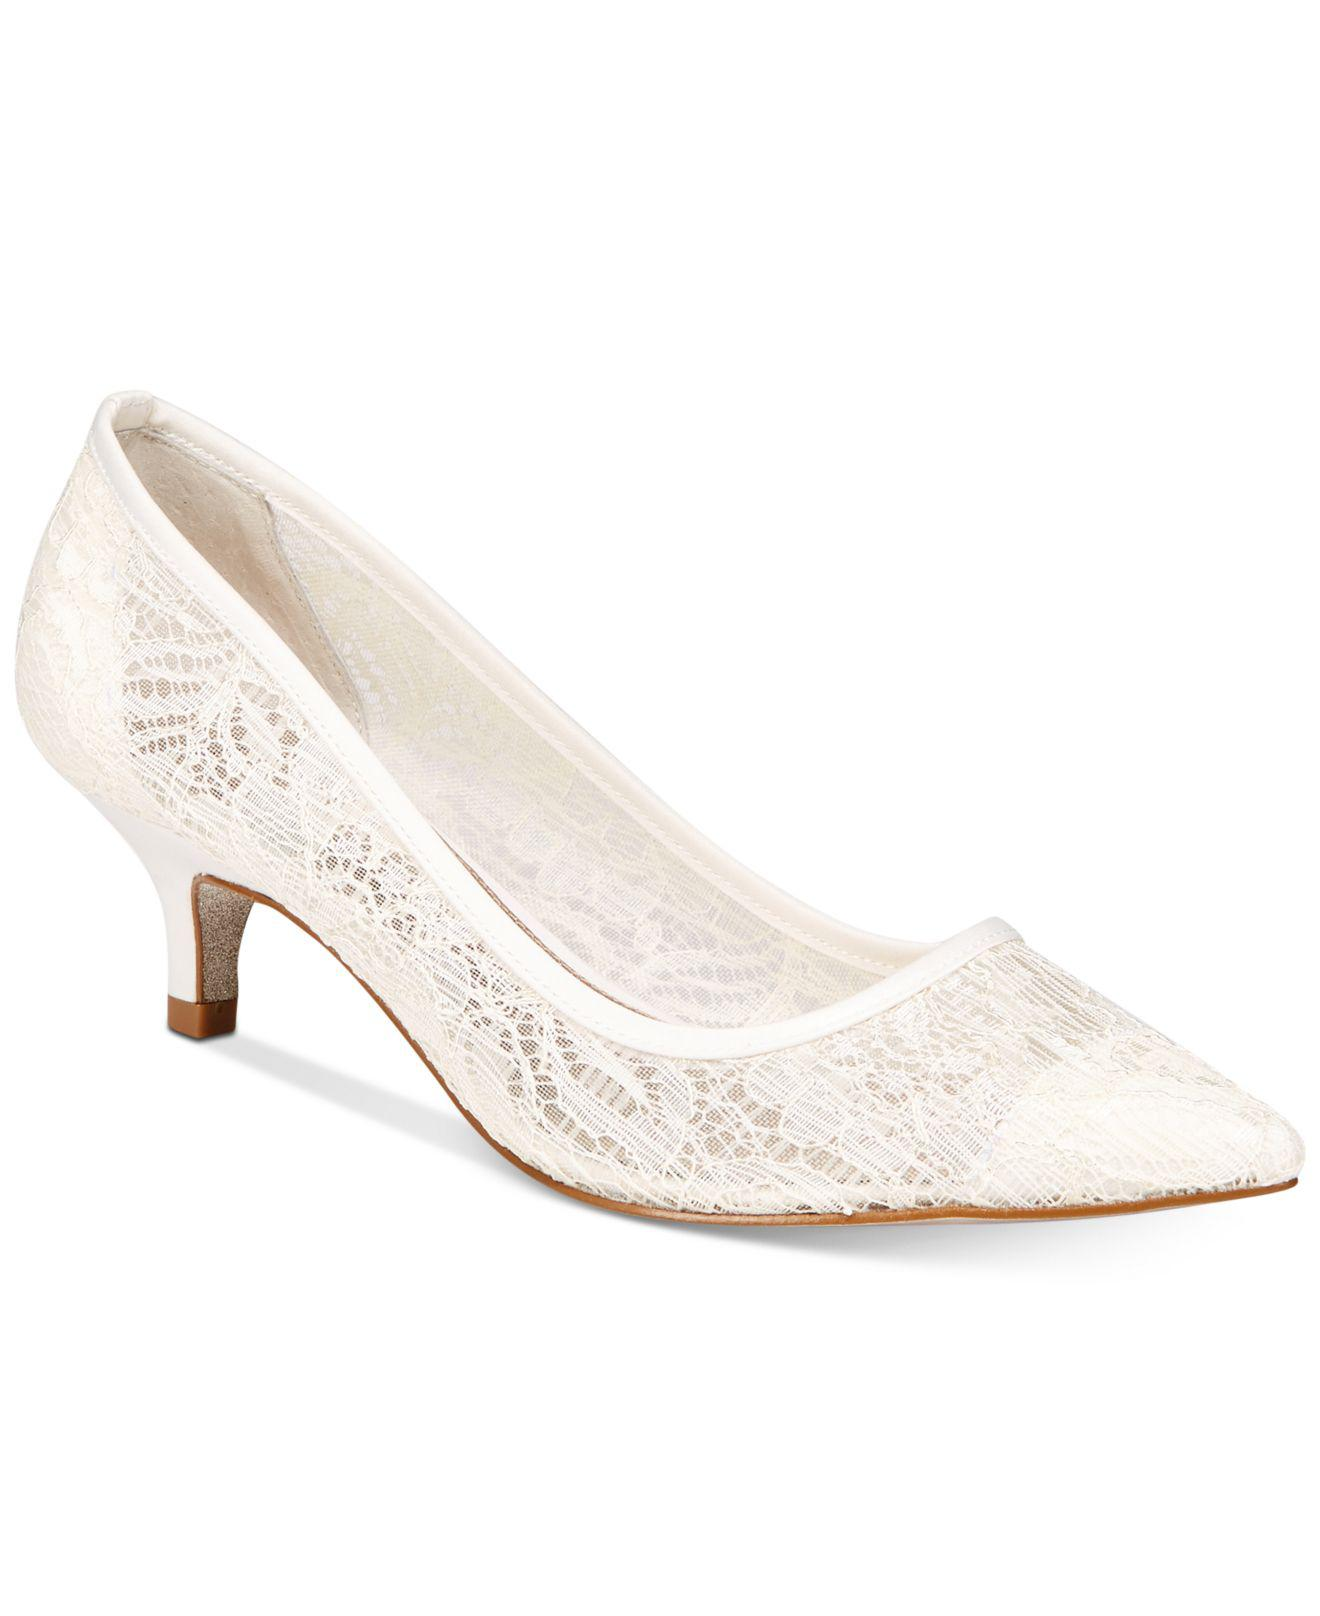 4972f84d6df Lyst - Adrianna Papell Lois Lace Evening Pumps in White - Save 31%